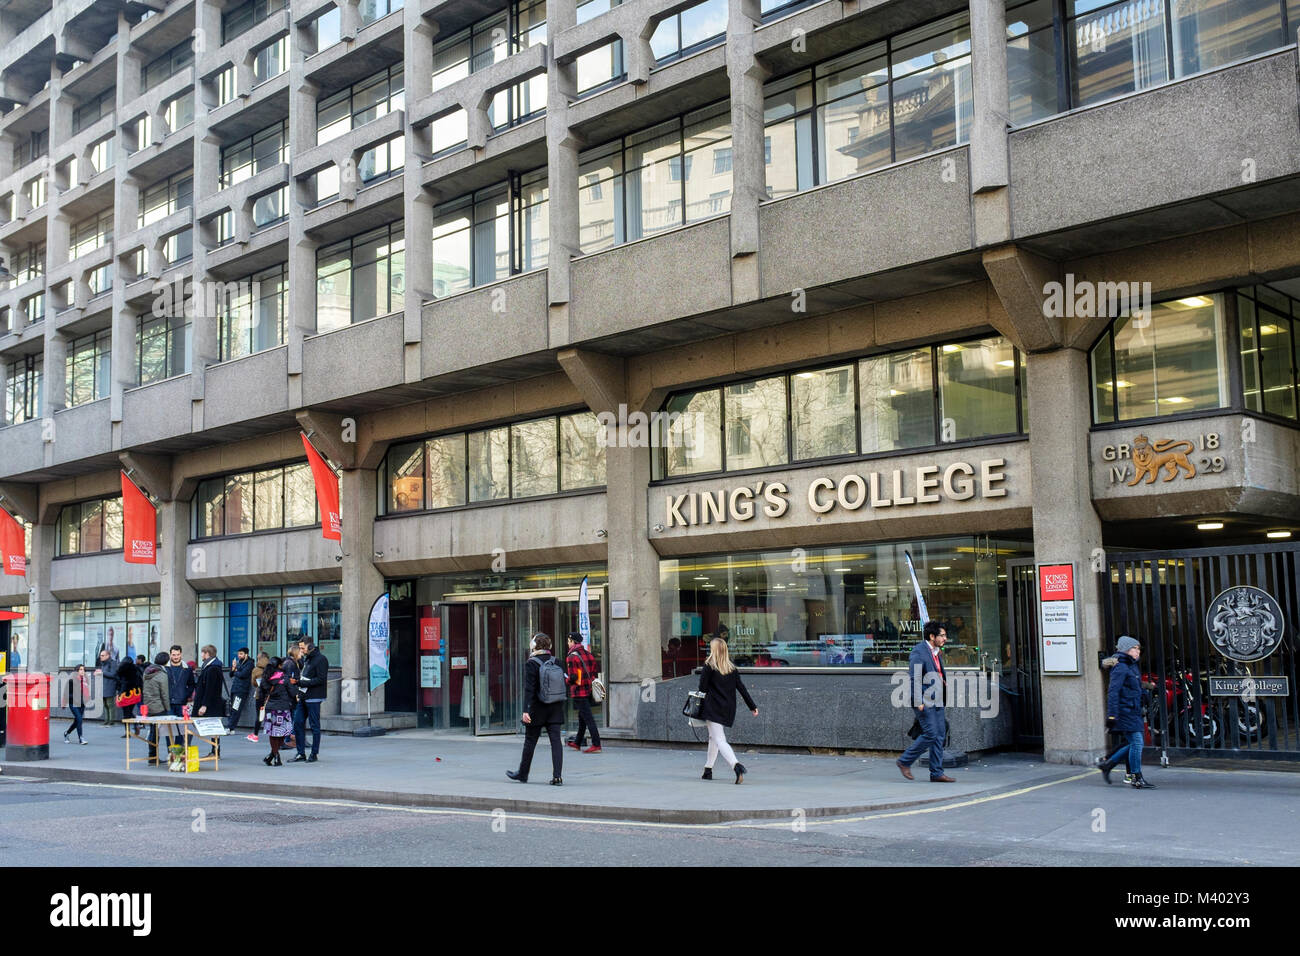 King's College London, Strand Campus building, London, UK. - Stock Image